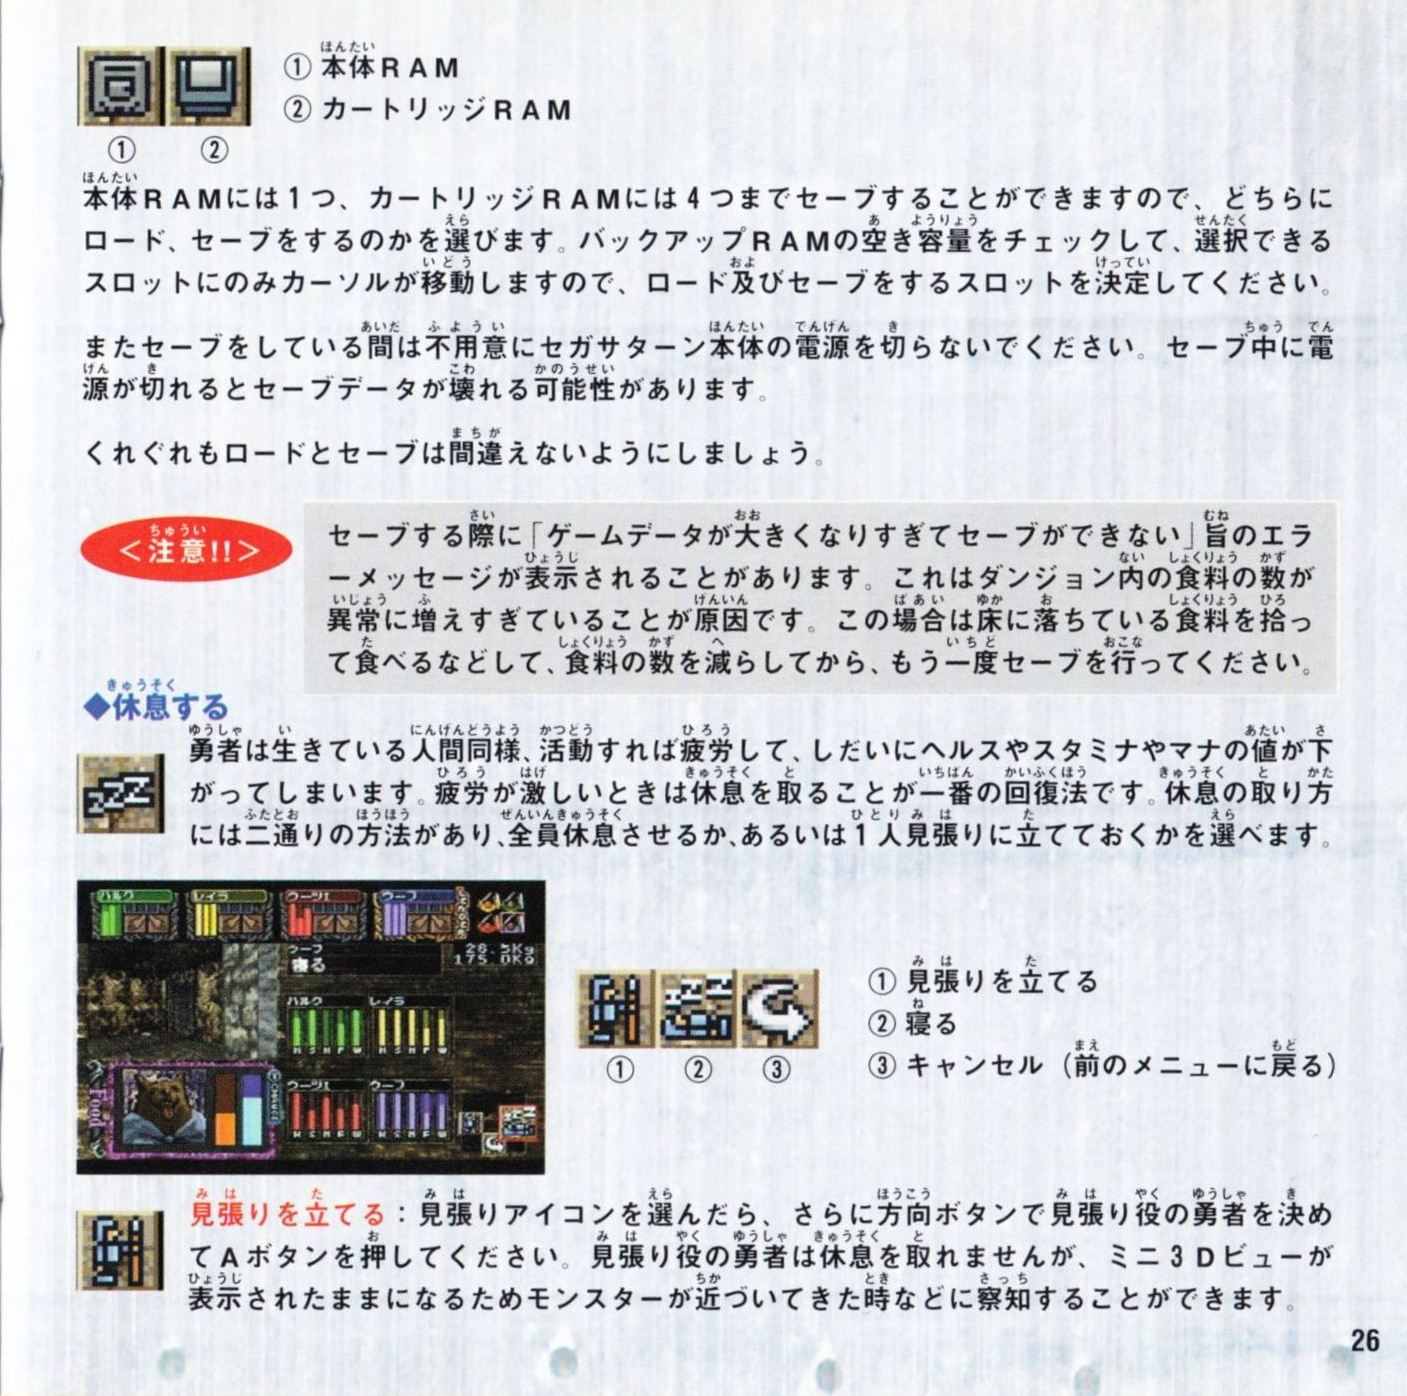 Game - Dungeon Master Nexus - JP - Sega Saturn - Booklet - Page 027 - Scan